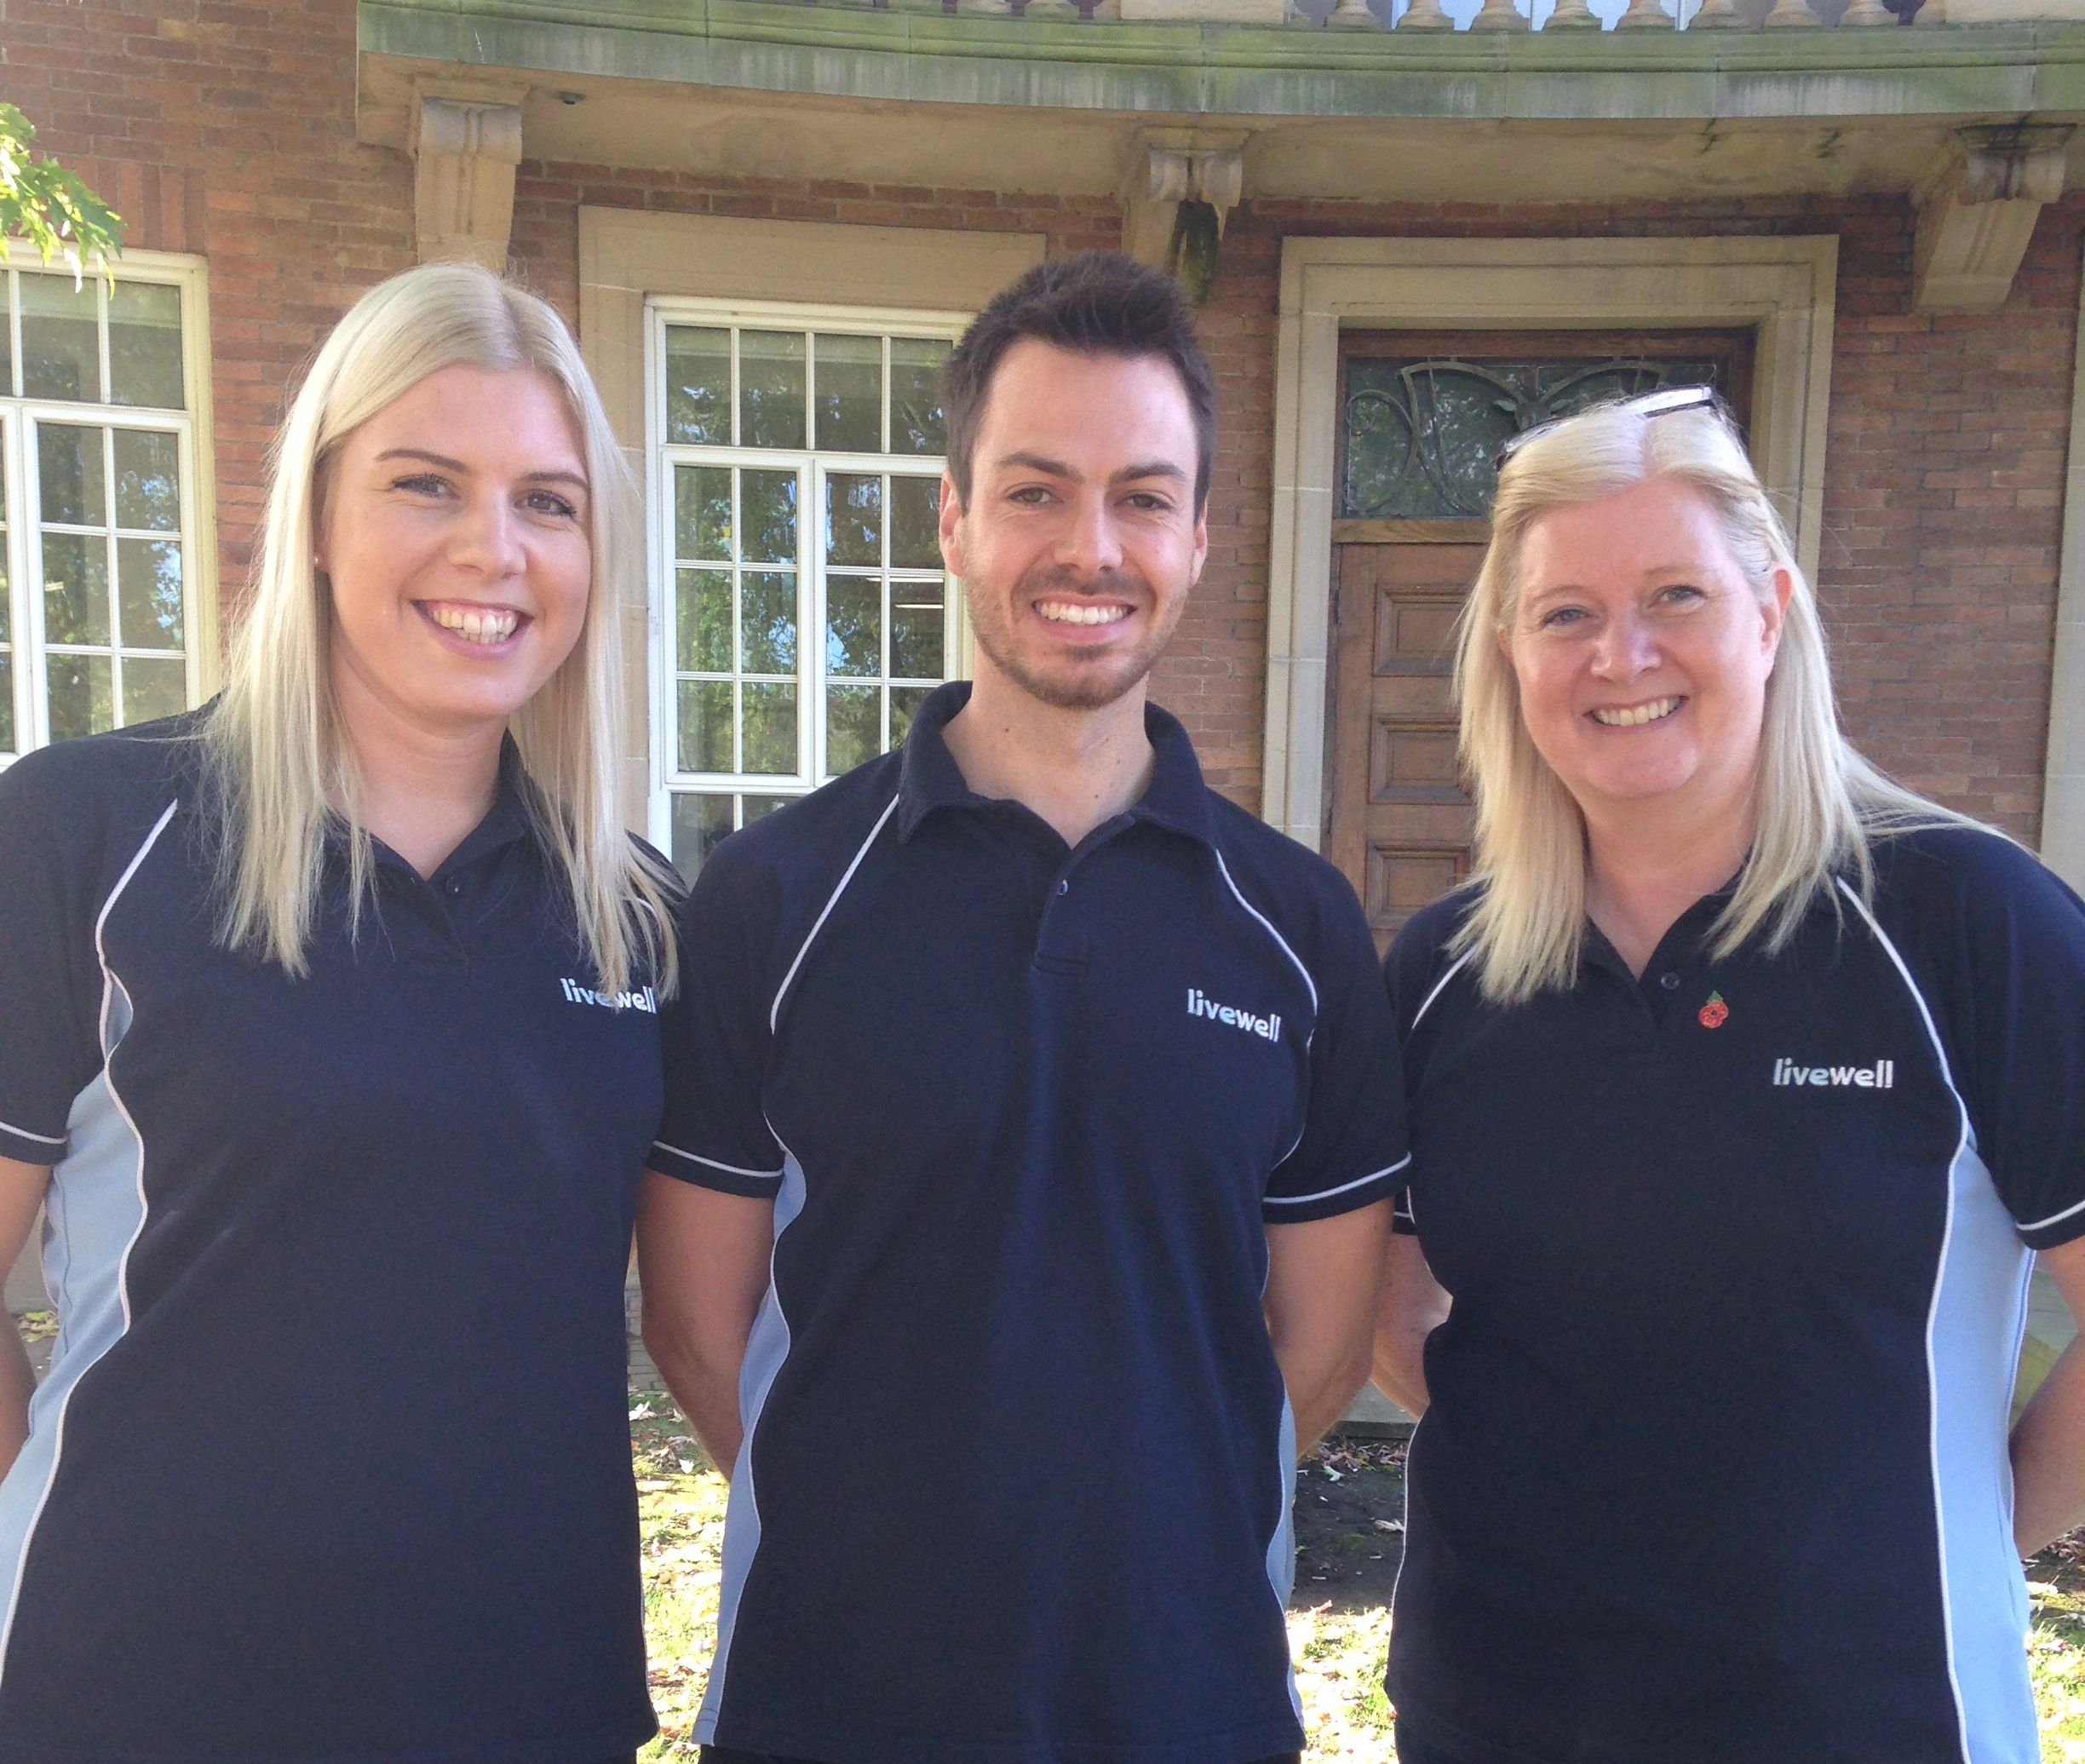 Livewell's health check team